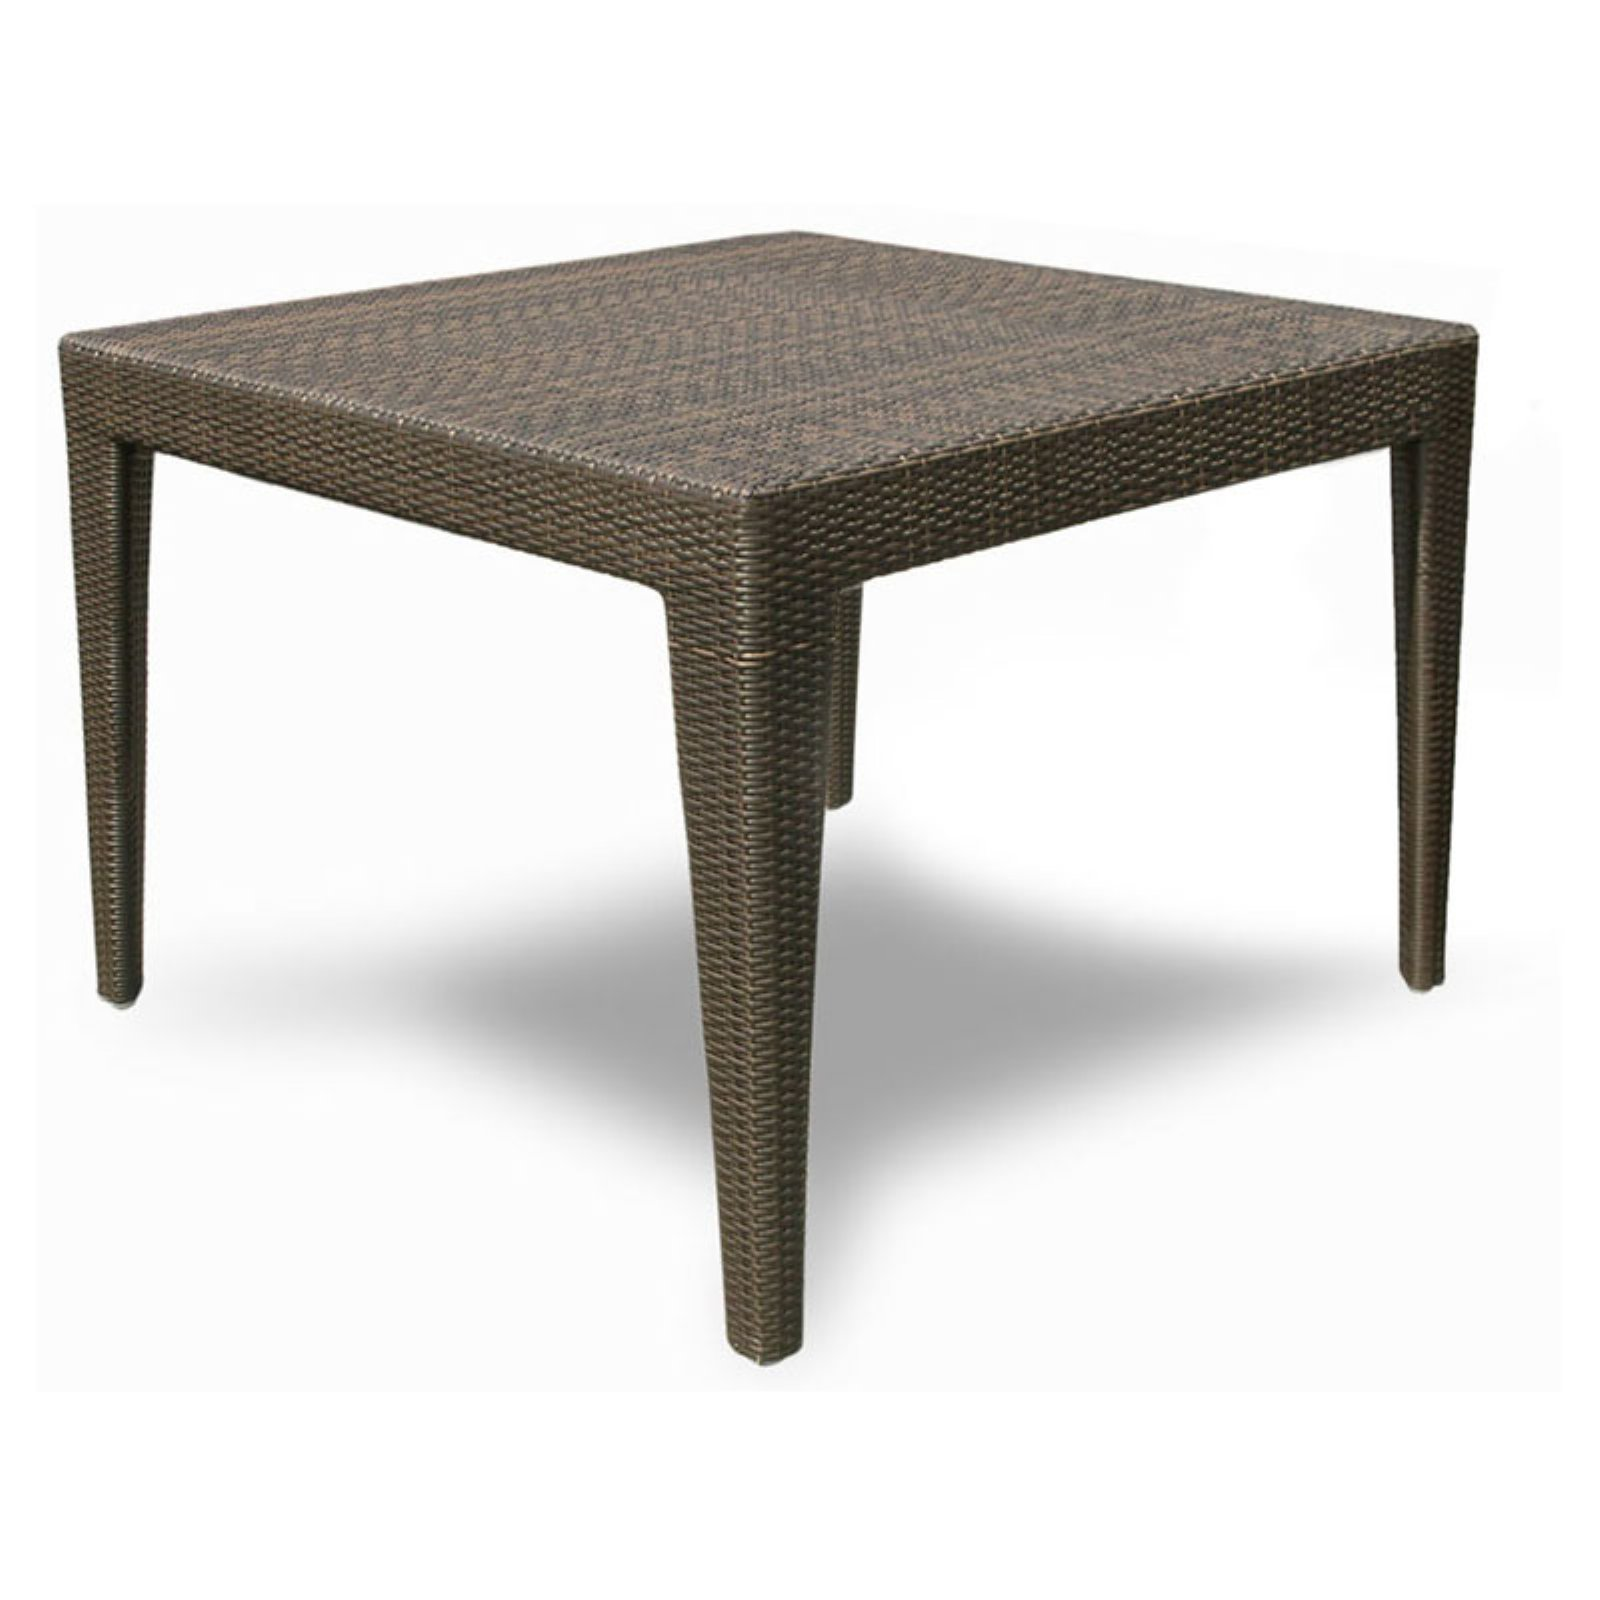 Hospitality Rattan Wave Square Dining Table with Optional Glass Top